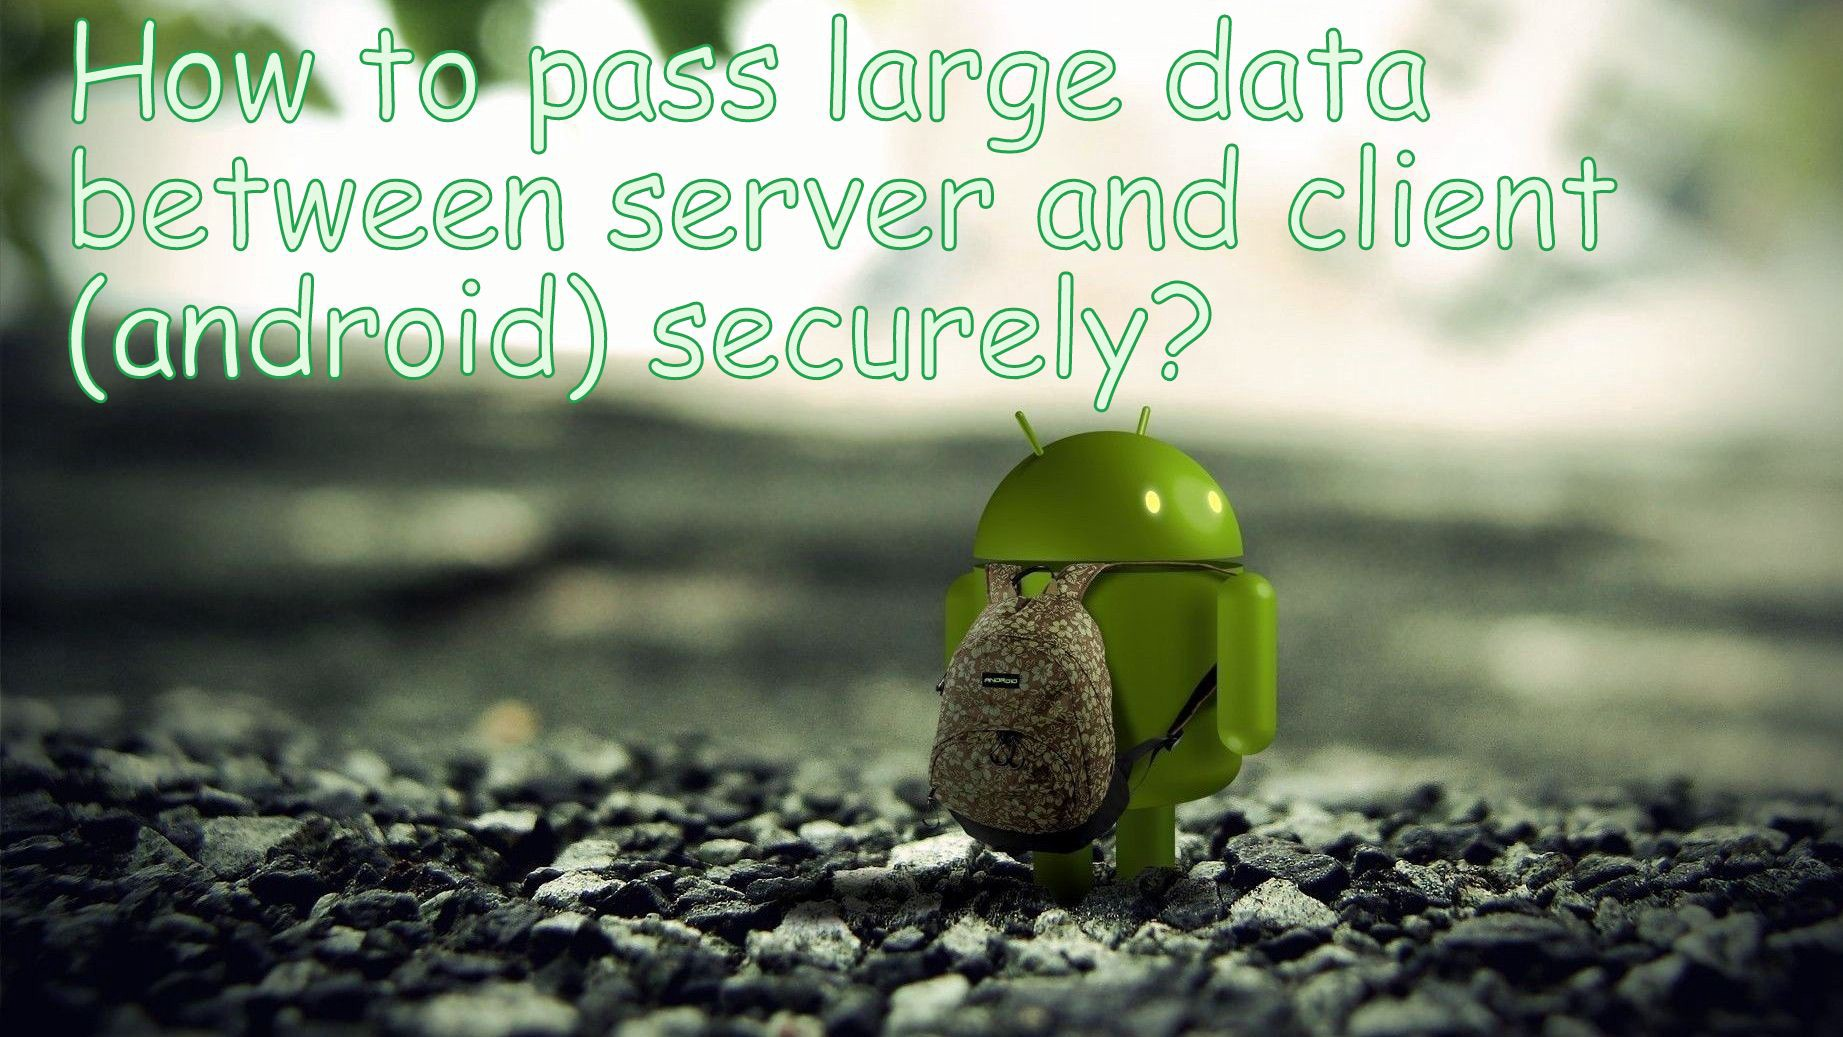 How to pass large data between server and client (android) securely?